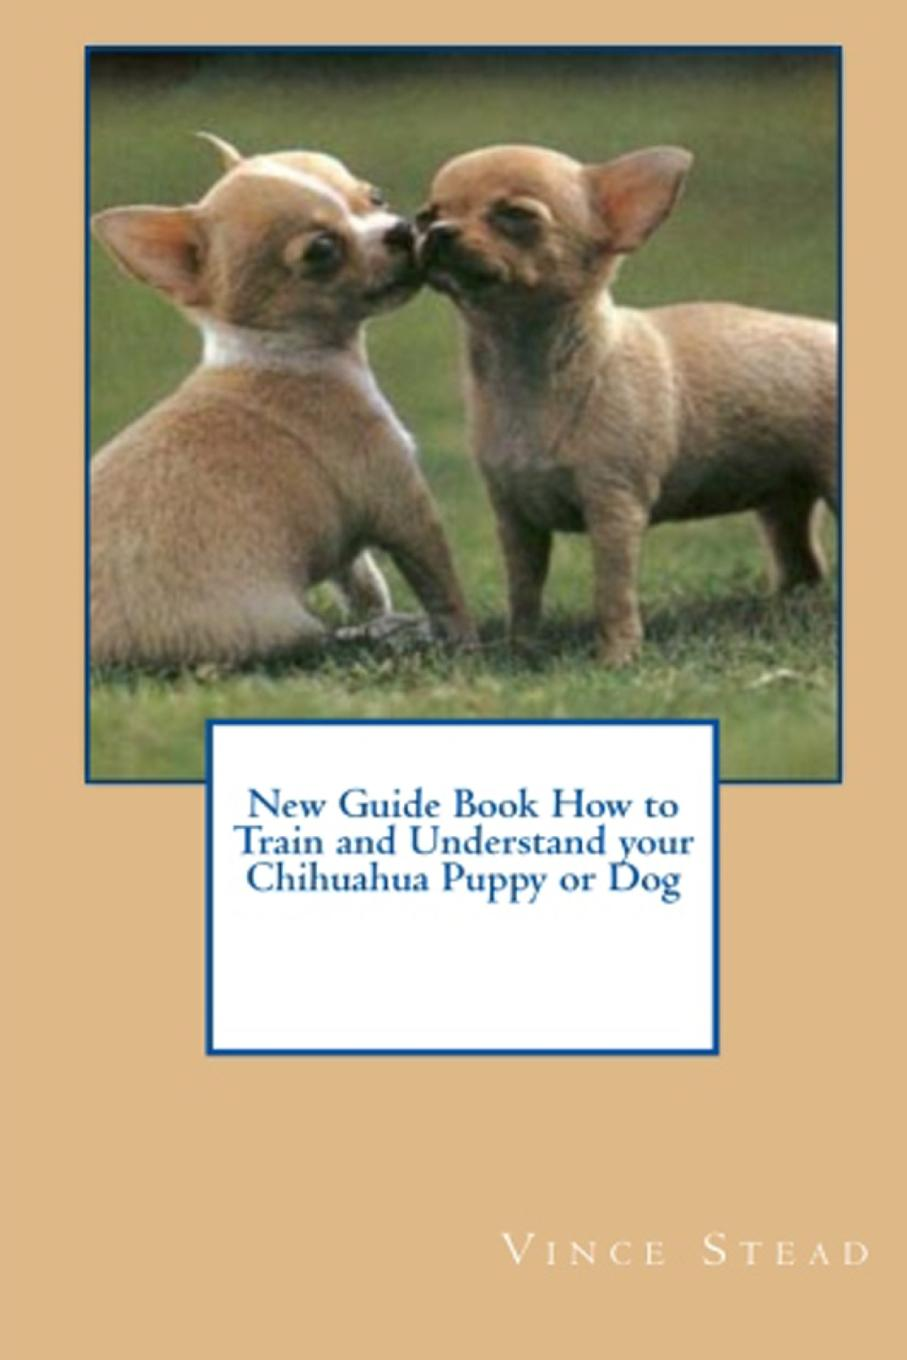 Vince Stead New Guide Book How to Train and Understand your Chihuahua Puppy or Dog vince stead how to understand and train your golden retriever puppy or dog